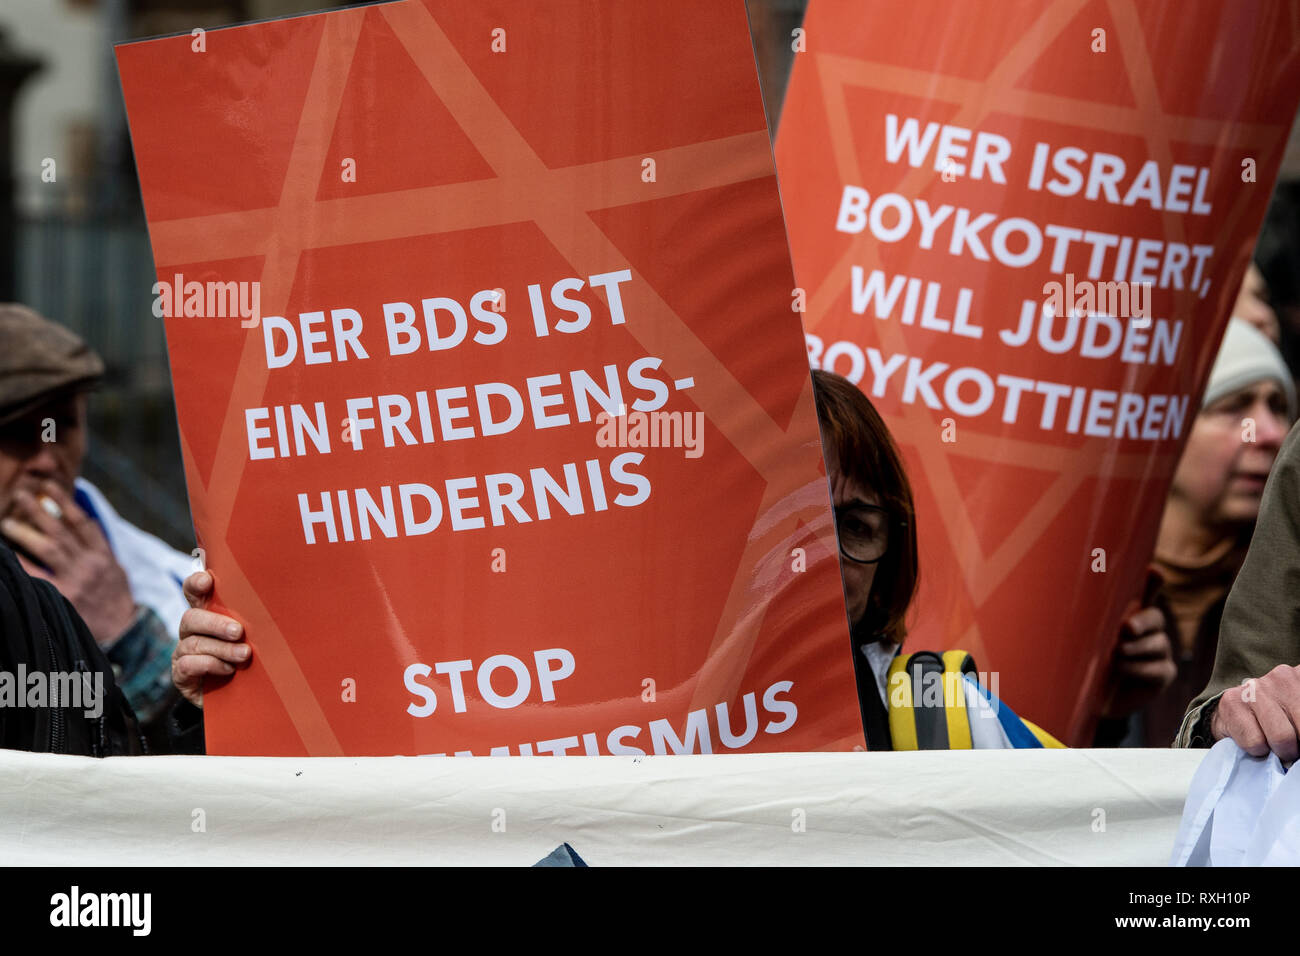 Lower Saxony, Germany. 9th March 2019. Participants with posters of the Alliance against Anti-Semitism and Anti-Zionism 'Jachad' protest under the motto 'No peace with the enemies of Israel' during the awarding of the Göttingen Peace Prize 2019 to the association 'Jewish Voice for Just Peace in the Middle East'. The Dr. Roland Röhl Foundation has been awarding the Göttingen Peace Prize since 1999, and there were reservations about this year's decision by the jury. Credit: dpa picture alliance/Alamy Live News - Stock Image